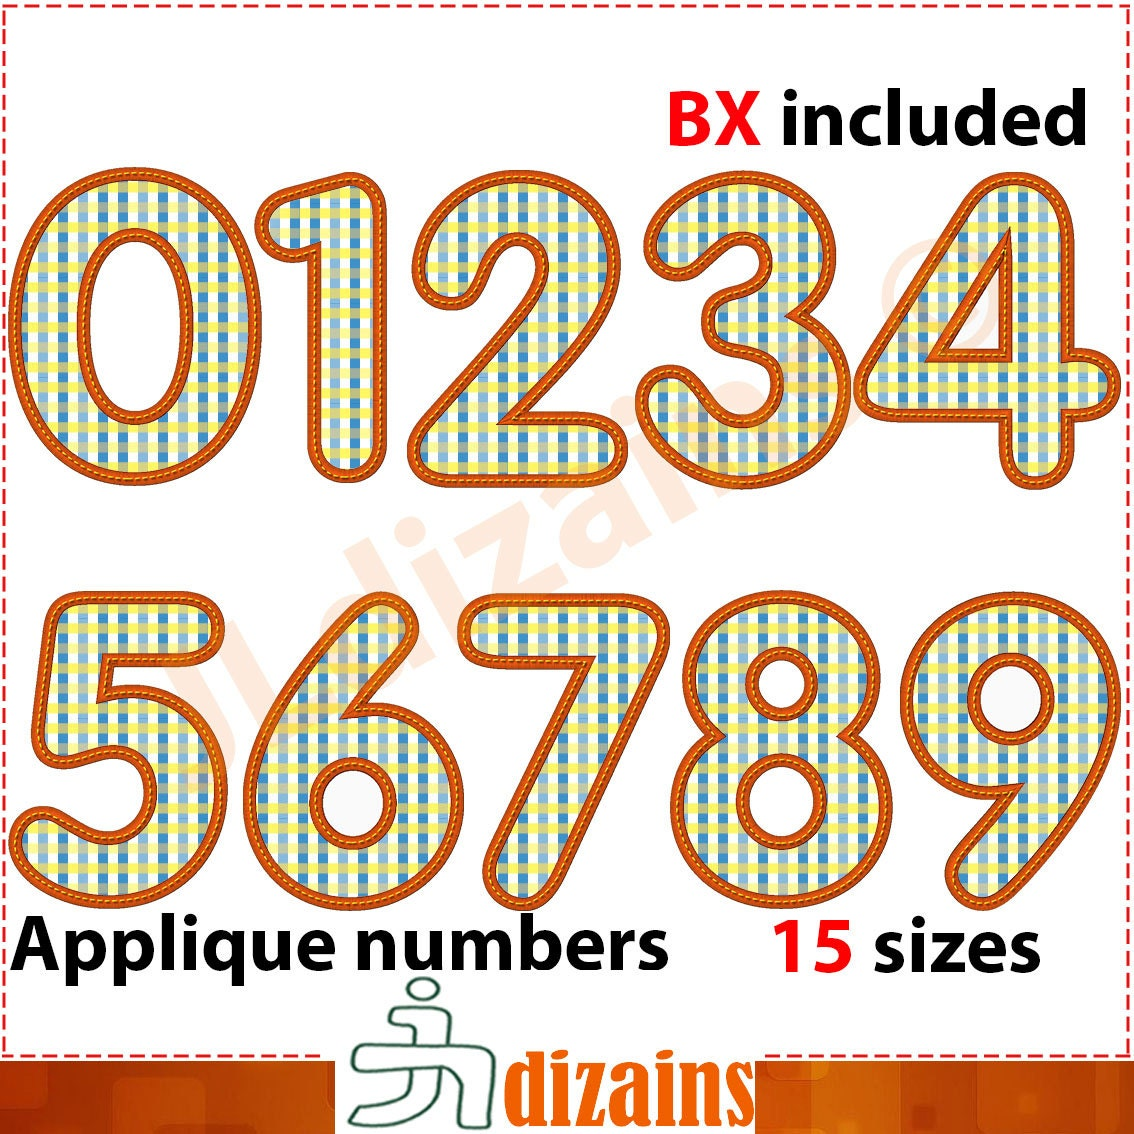 Applique numbers number embroidery design birthday